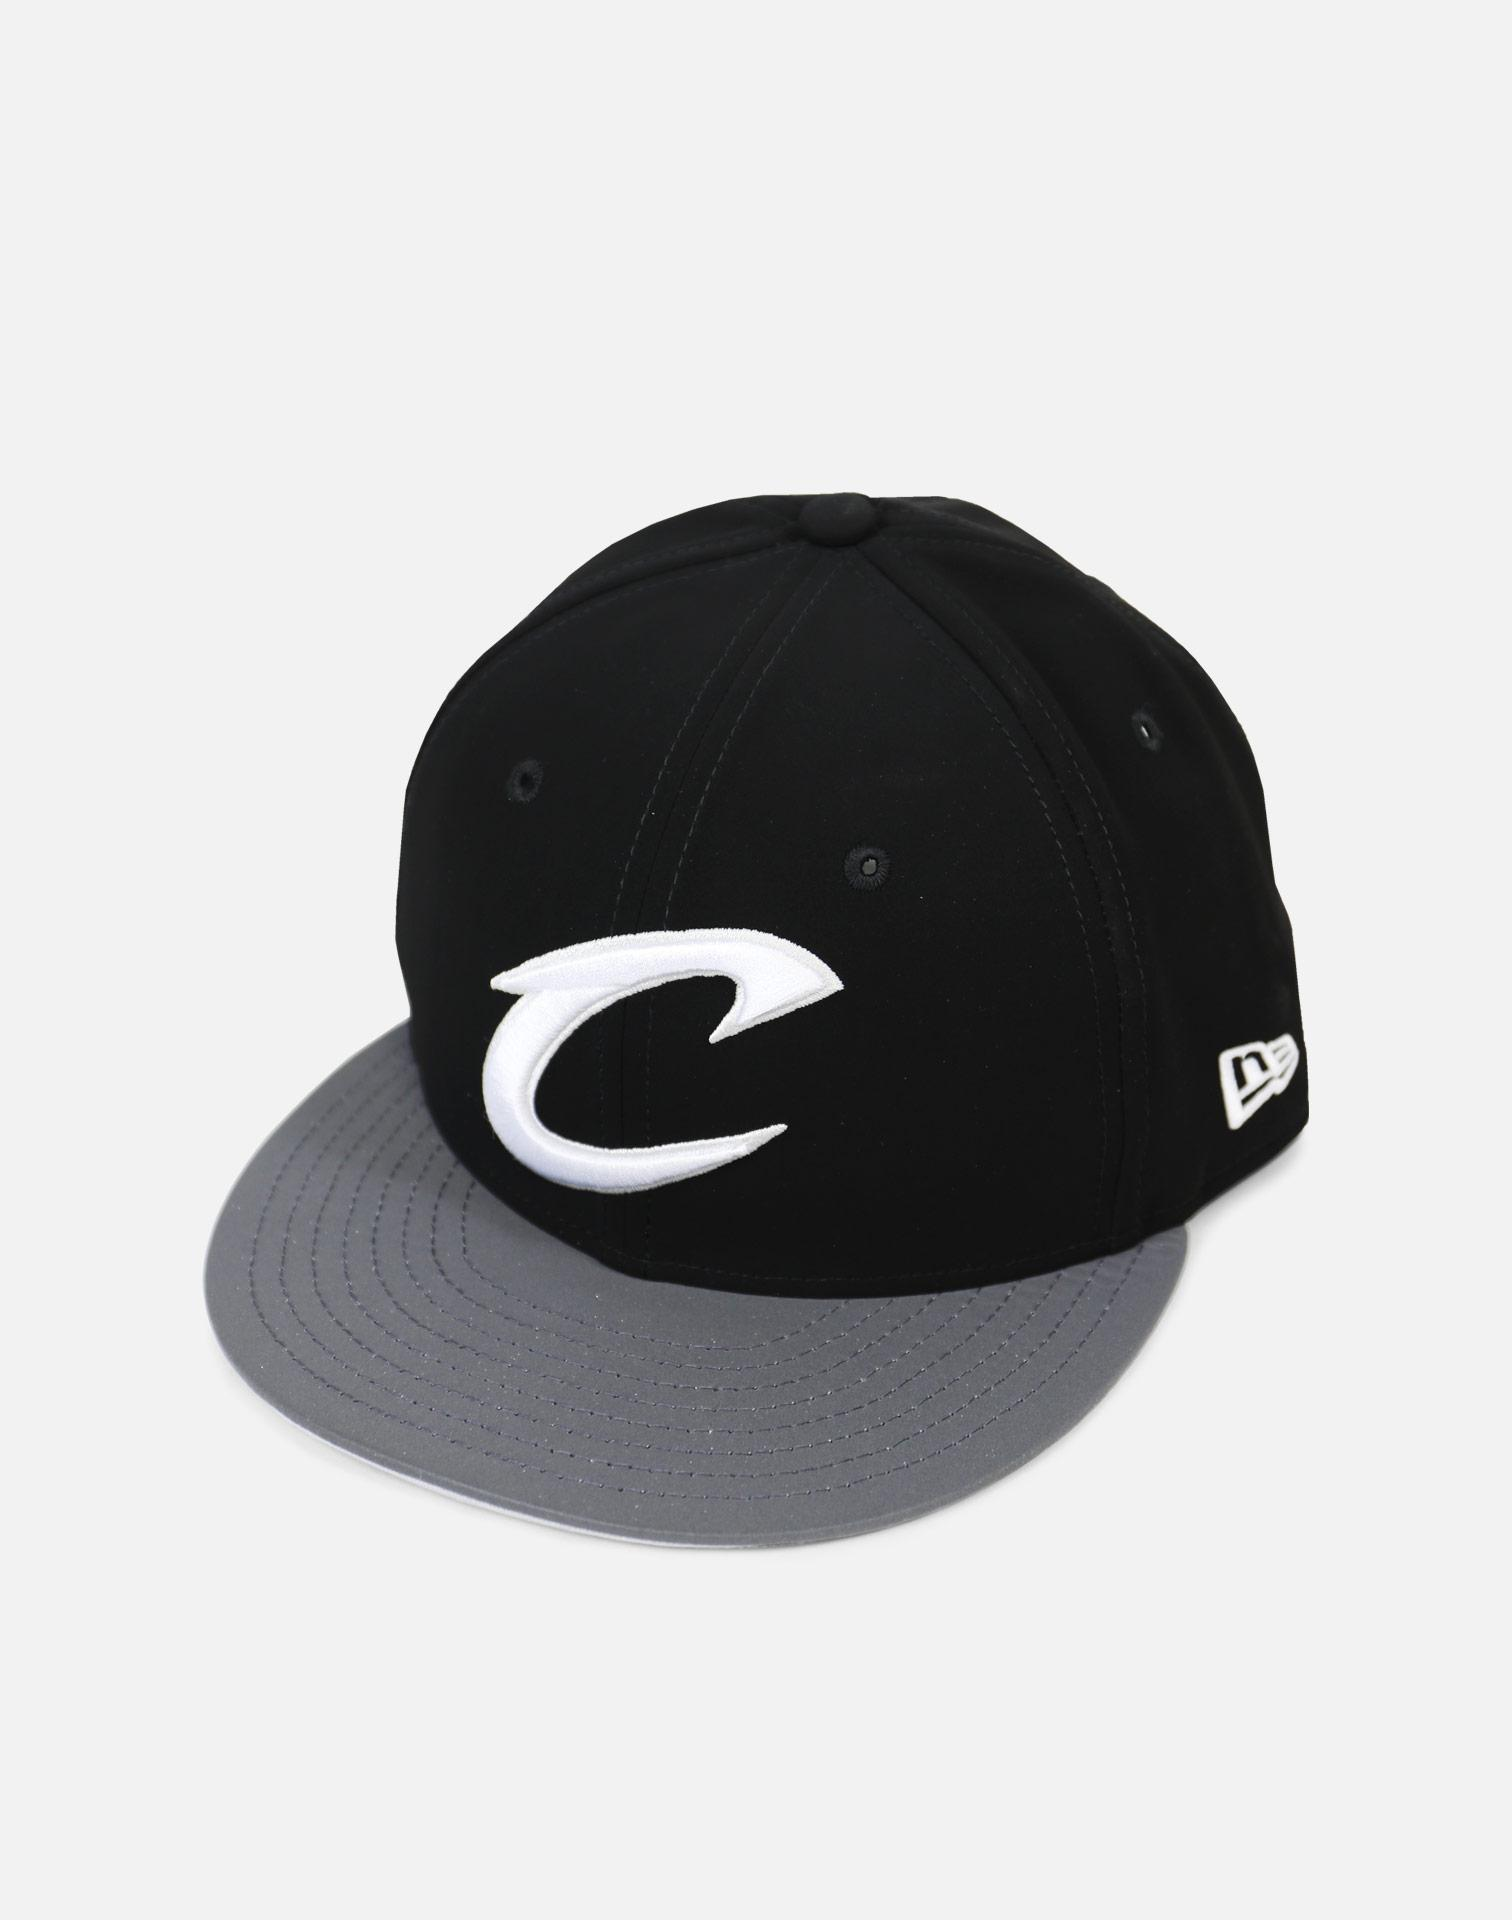 low priced a2bfc b7c60 Lyst - Ktz Cleveland Cavaliers Reflective Hook Snapback Hat in Black ...